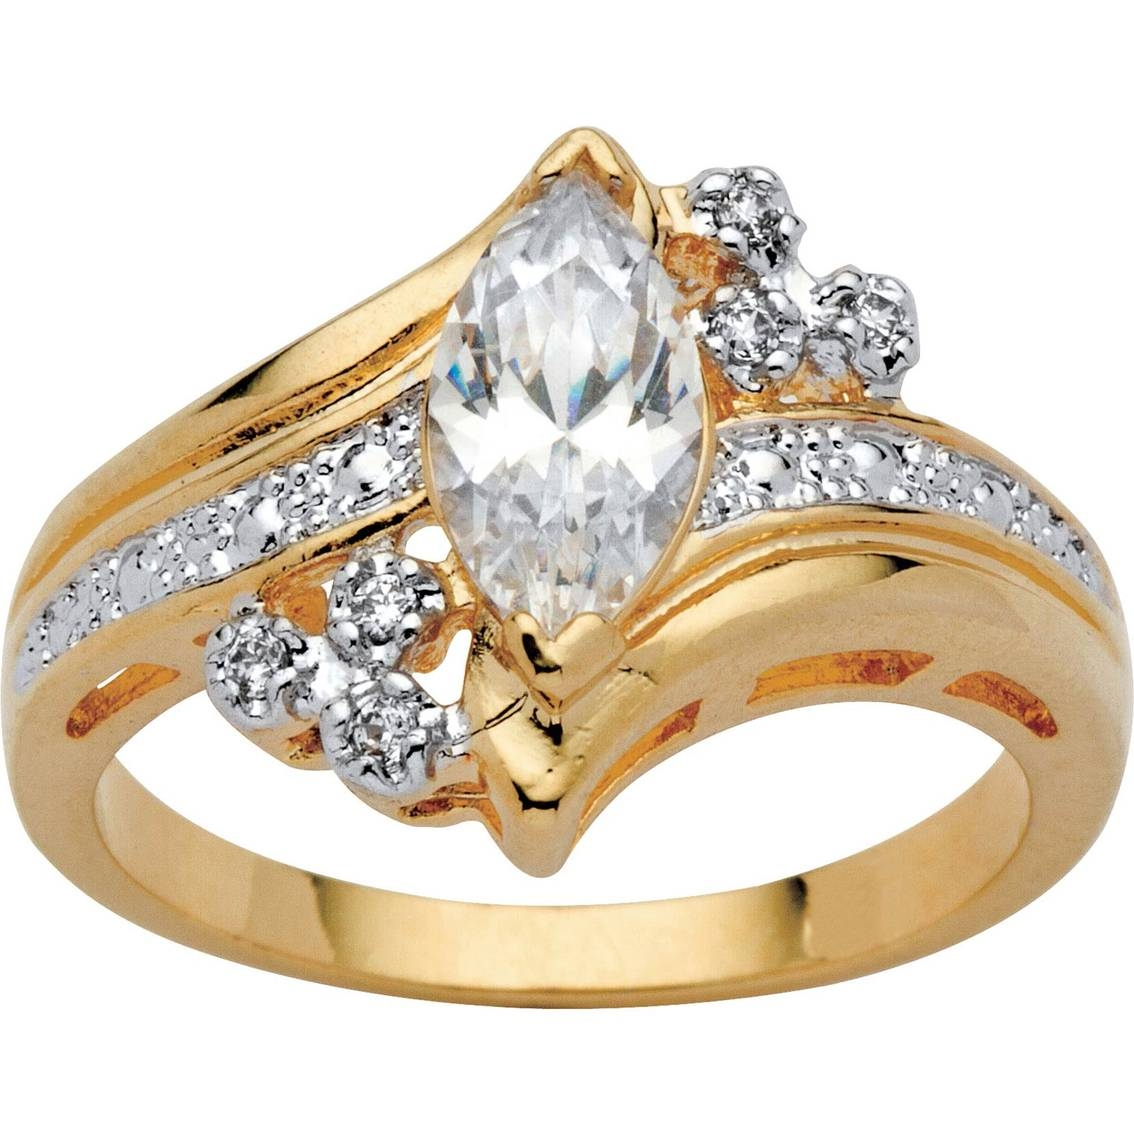 Palmbeach 14K Yellow Gold Plated Marquise Cut Cubic Zirconia For Most Recently Released Cubic Zirconia Anniversary Rings (Gallery 8 of 25)